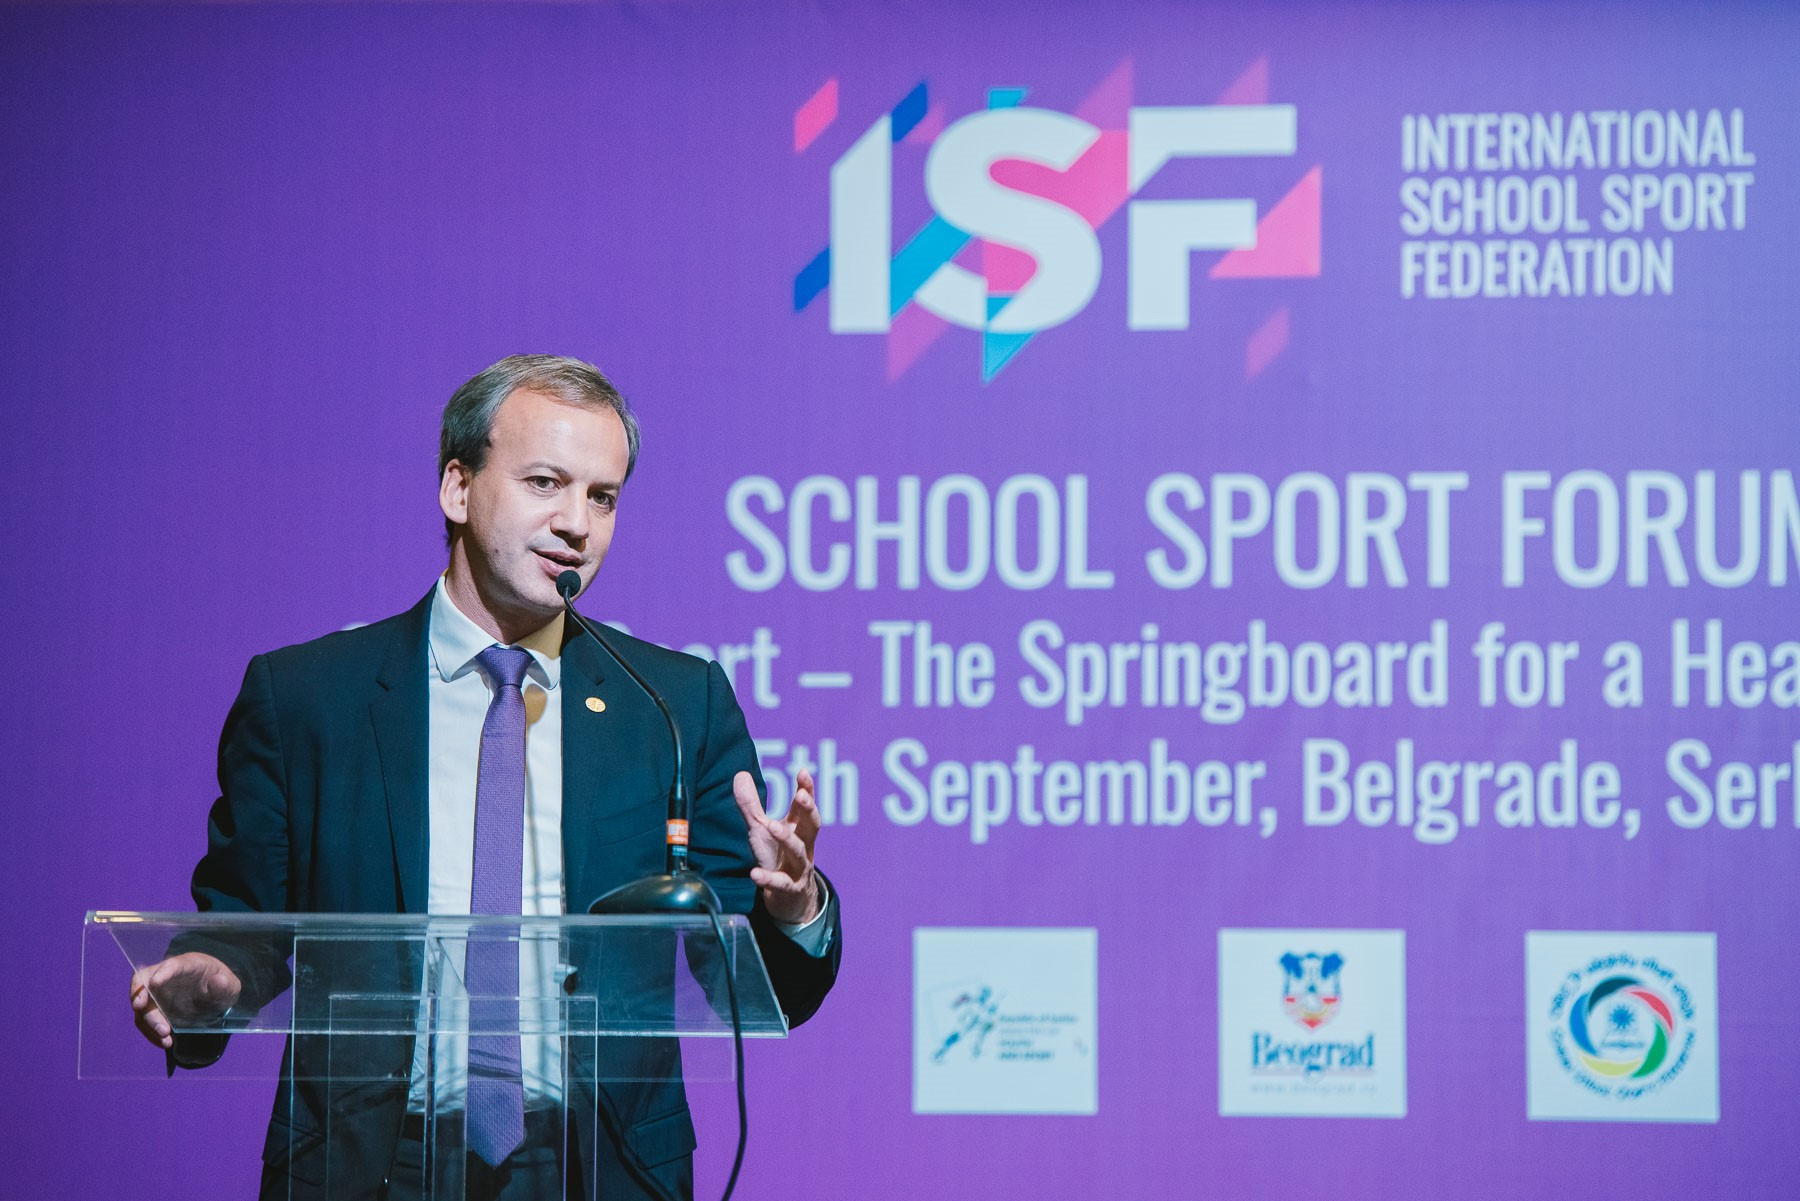 FIDE President Arkady Dvorkovich signed a Memorandum of Understanding with the ISF during the School Sport Forum ©ISF